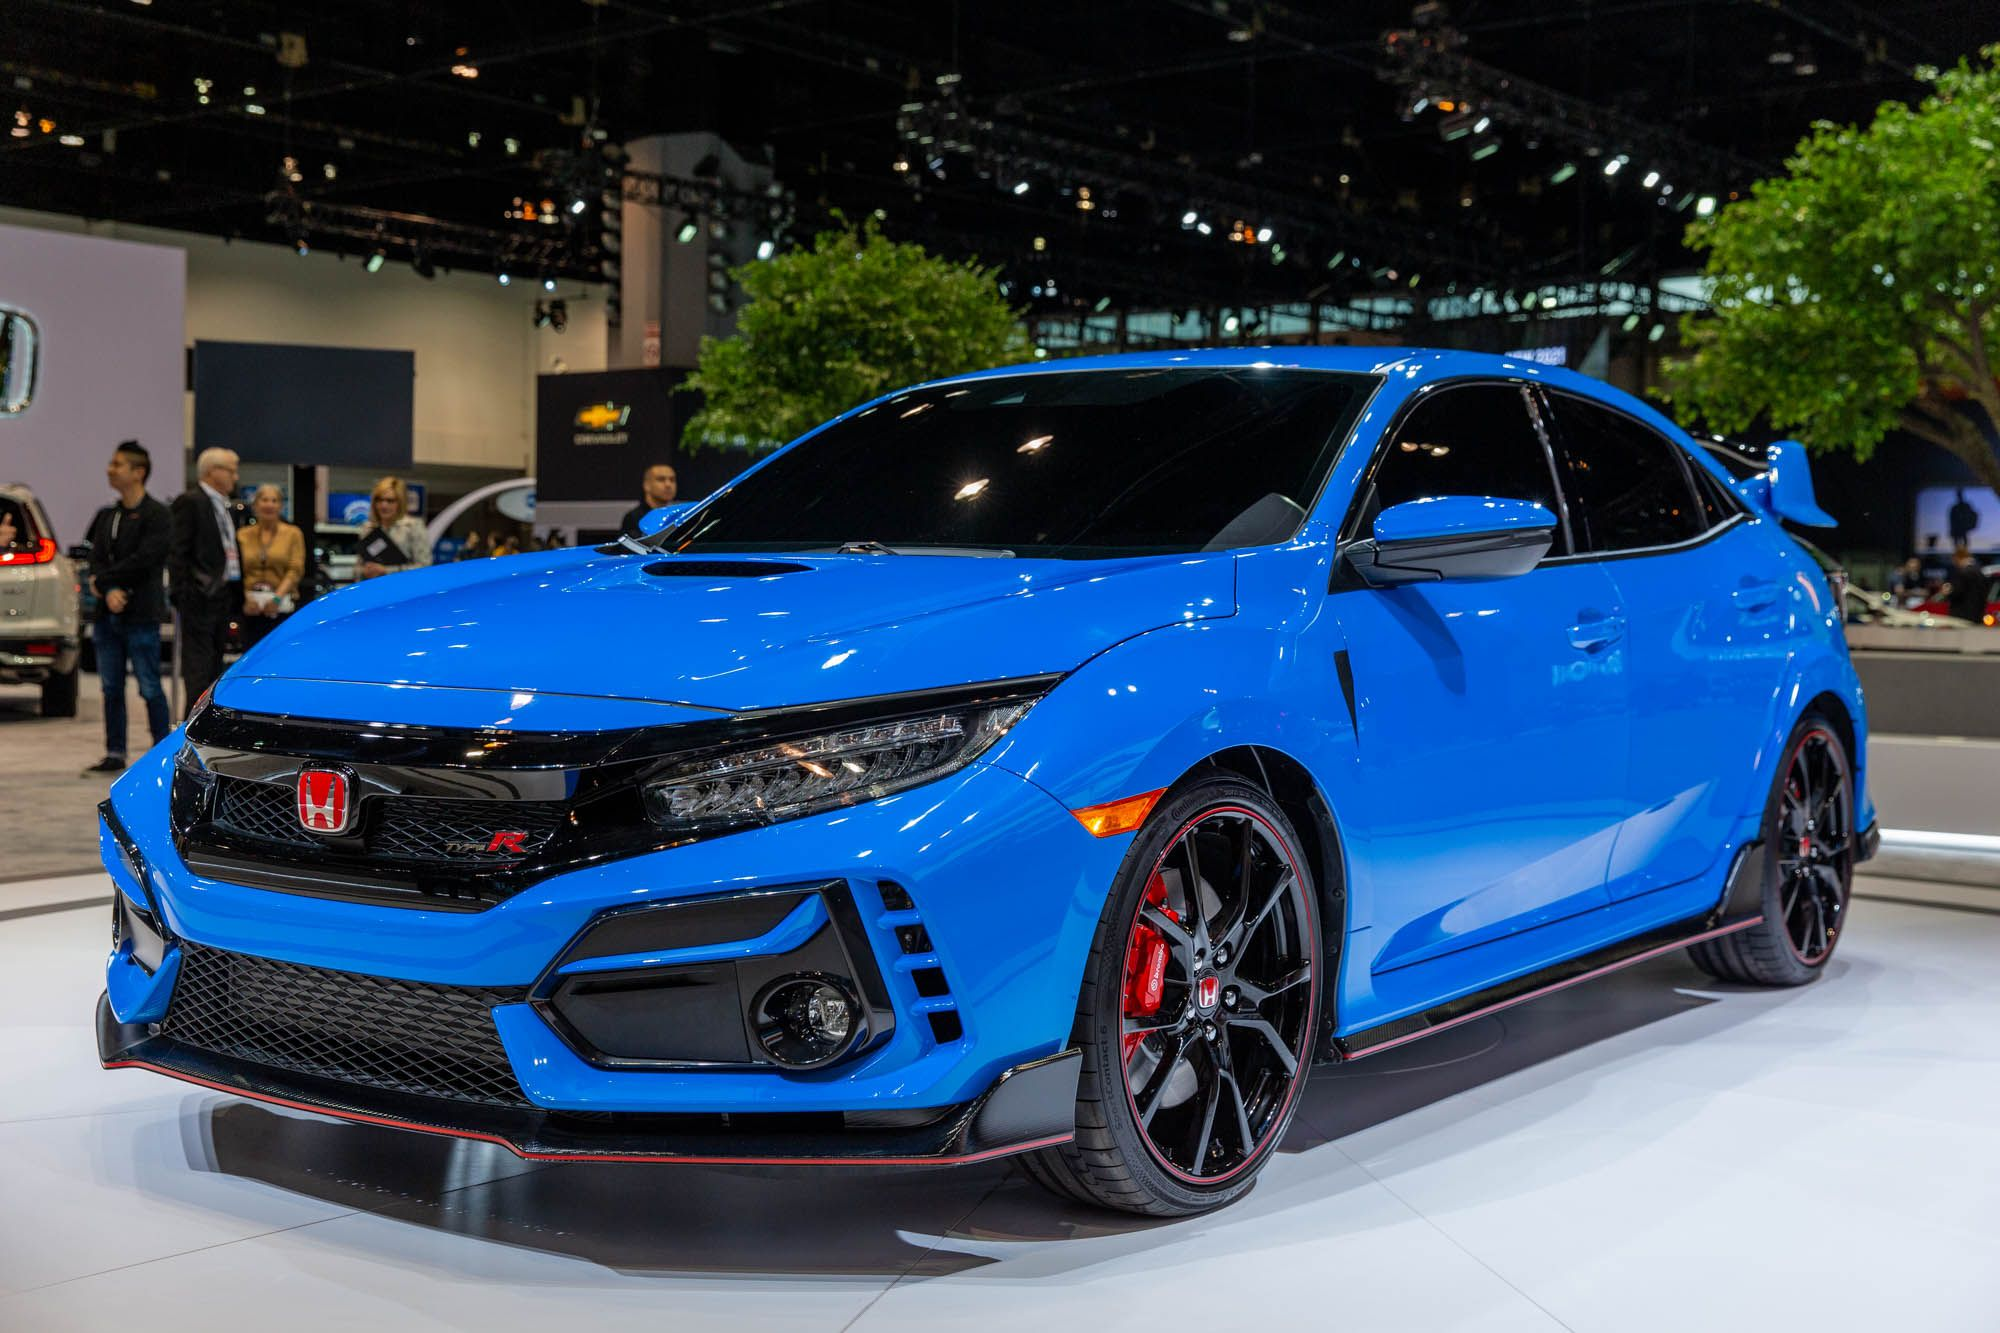 The refreshed 2020 Honda Civic Type R hot hatchback gets a